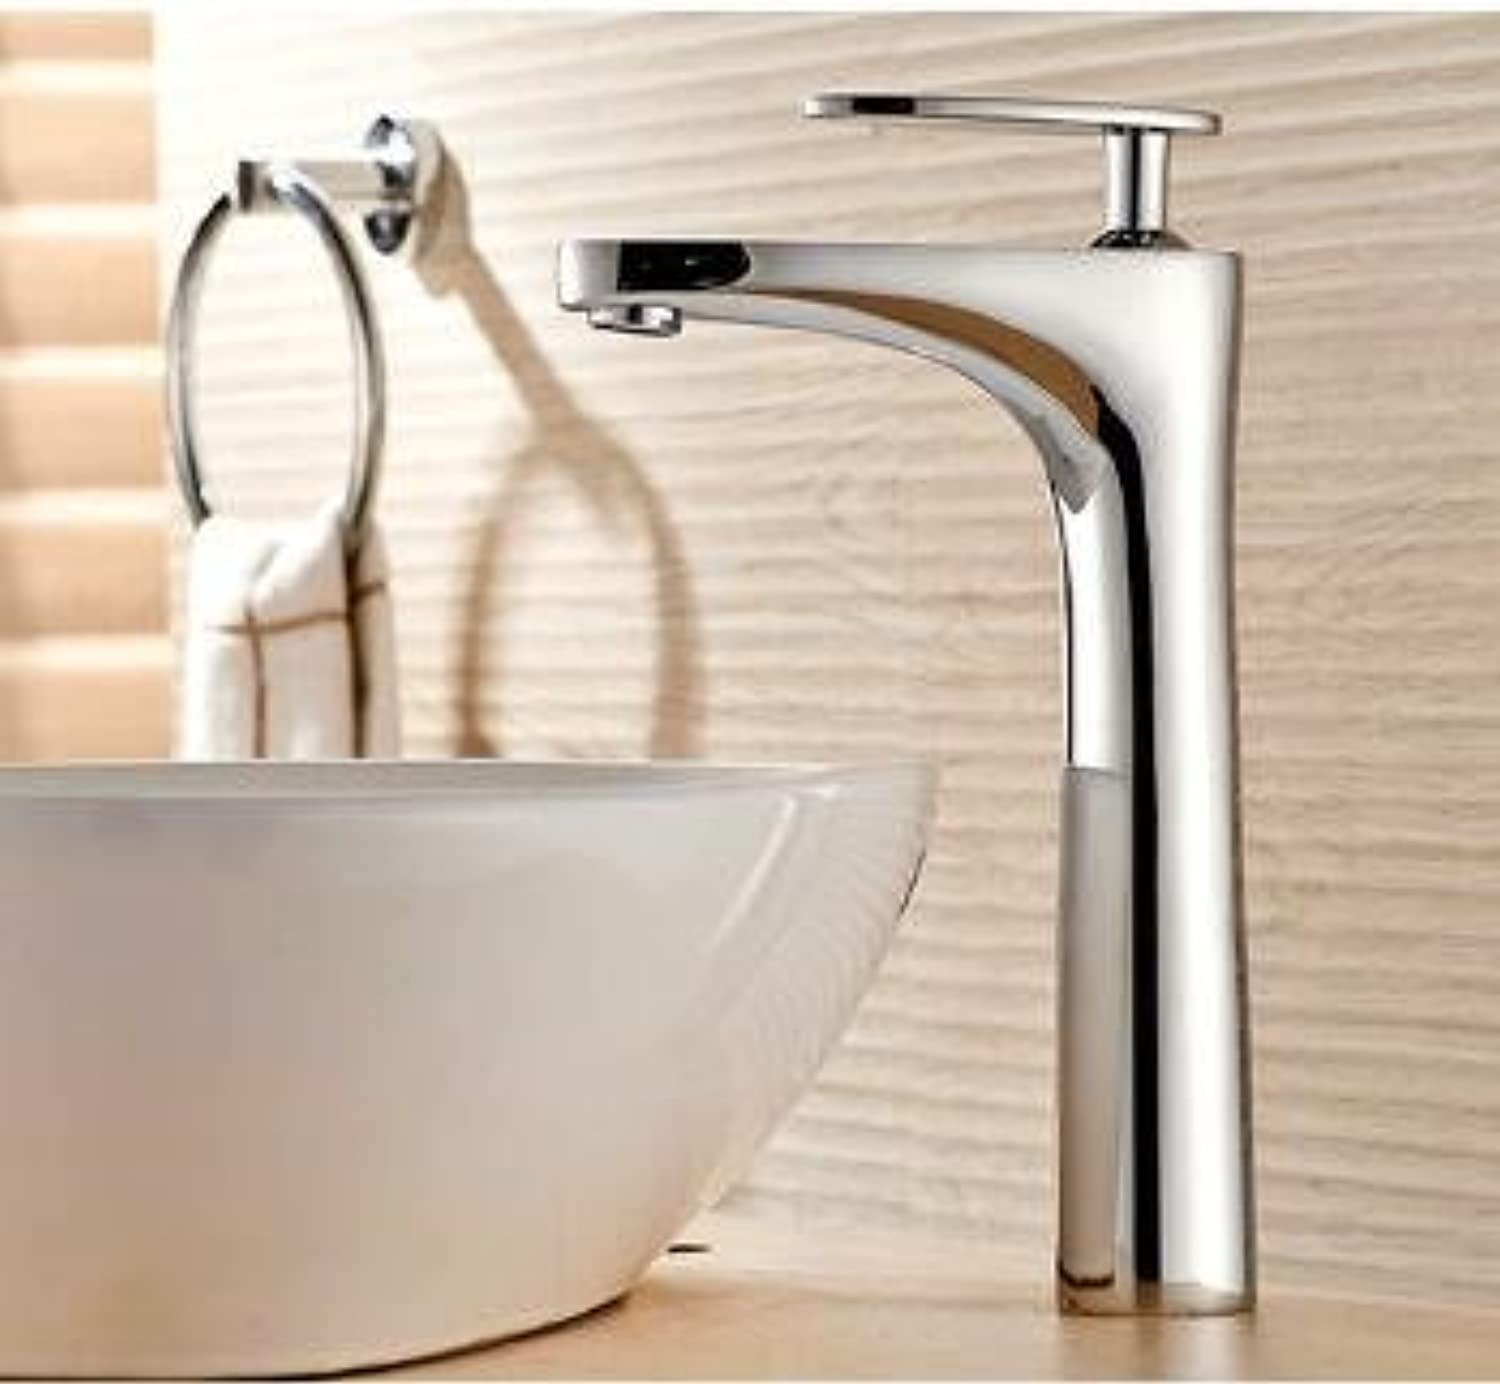 Maifeini New Bathroom Faucet Deluxe High Quality Chrome Finish Hot And Cold Baths Heat Sink Faucet Basin Series, Water Points On The Mixer, Chrome And High